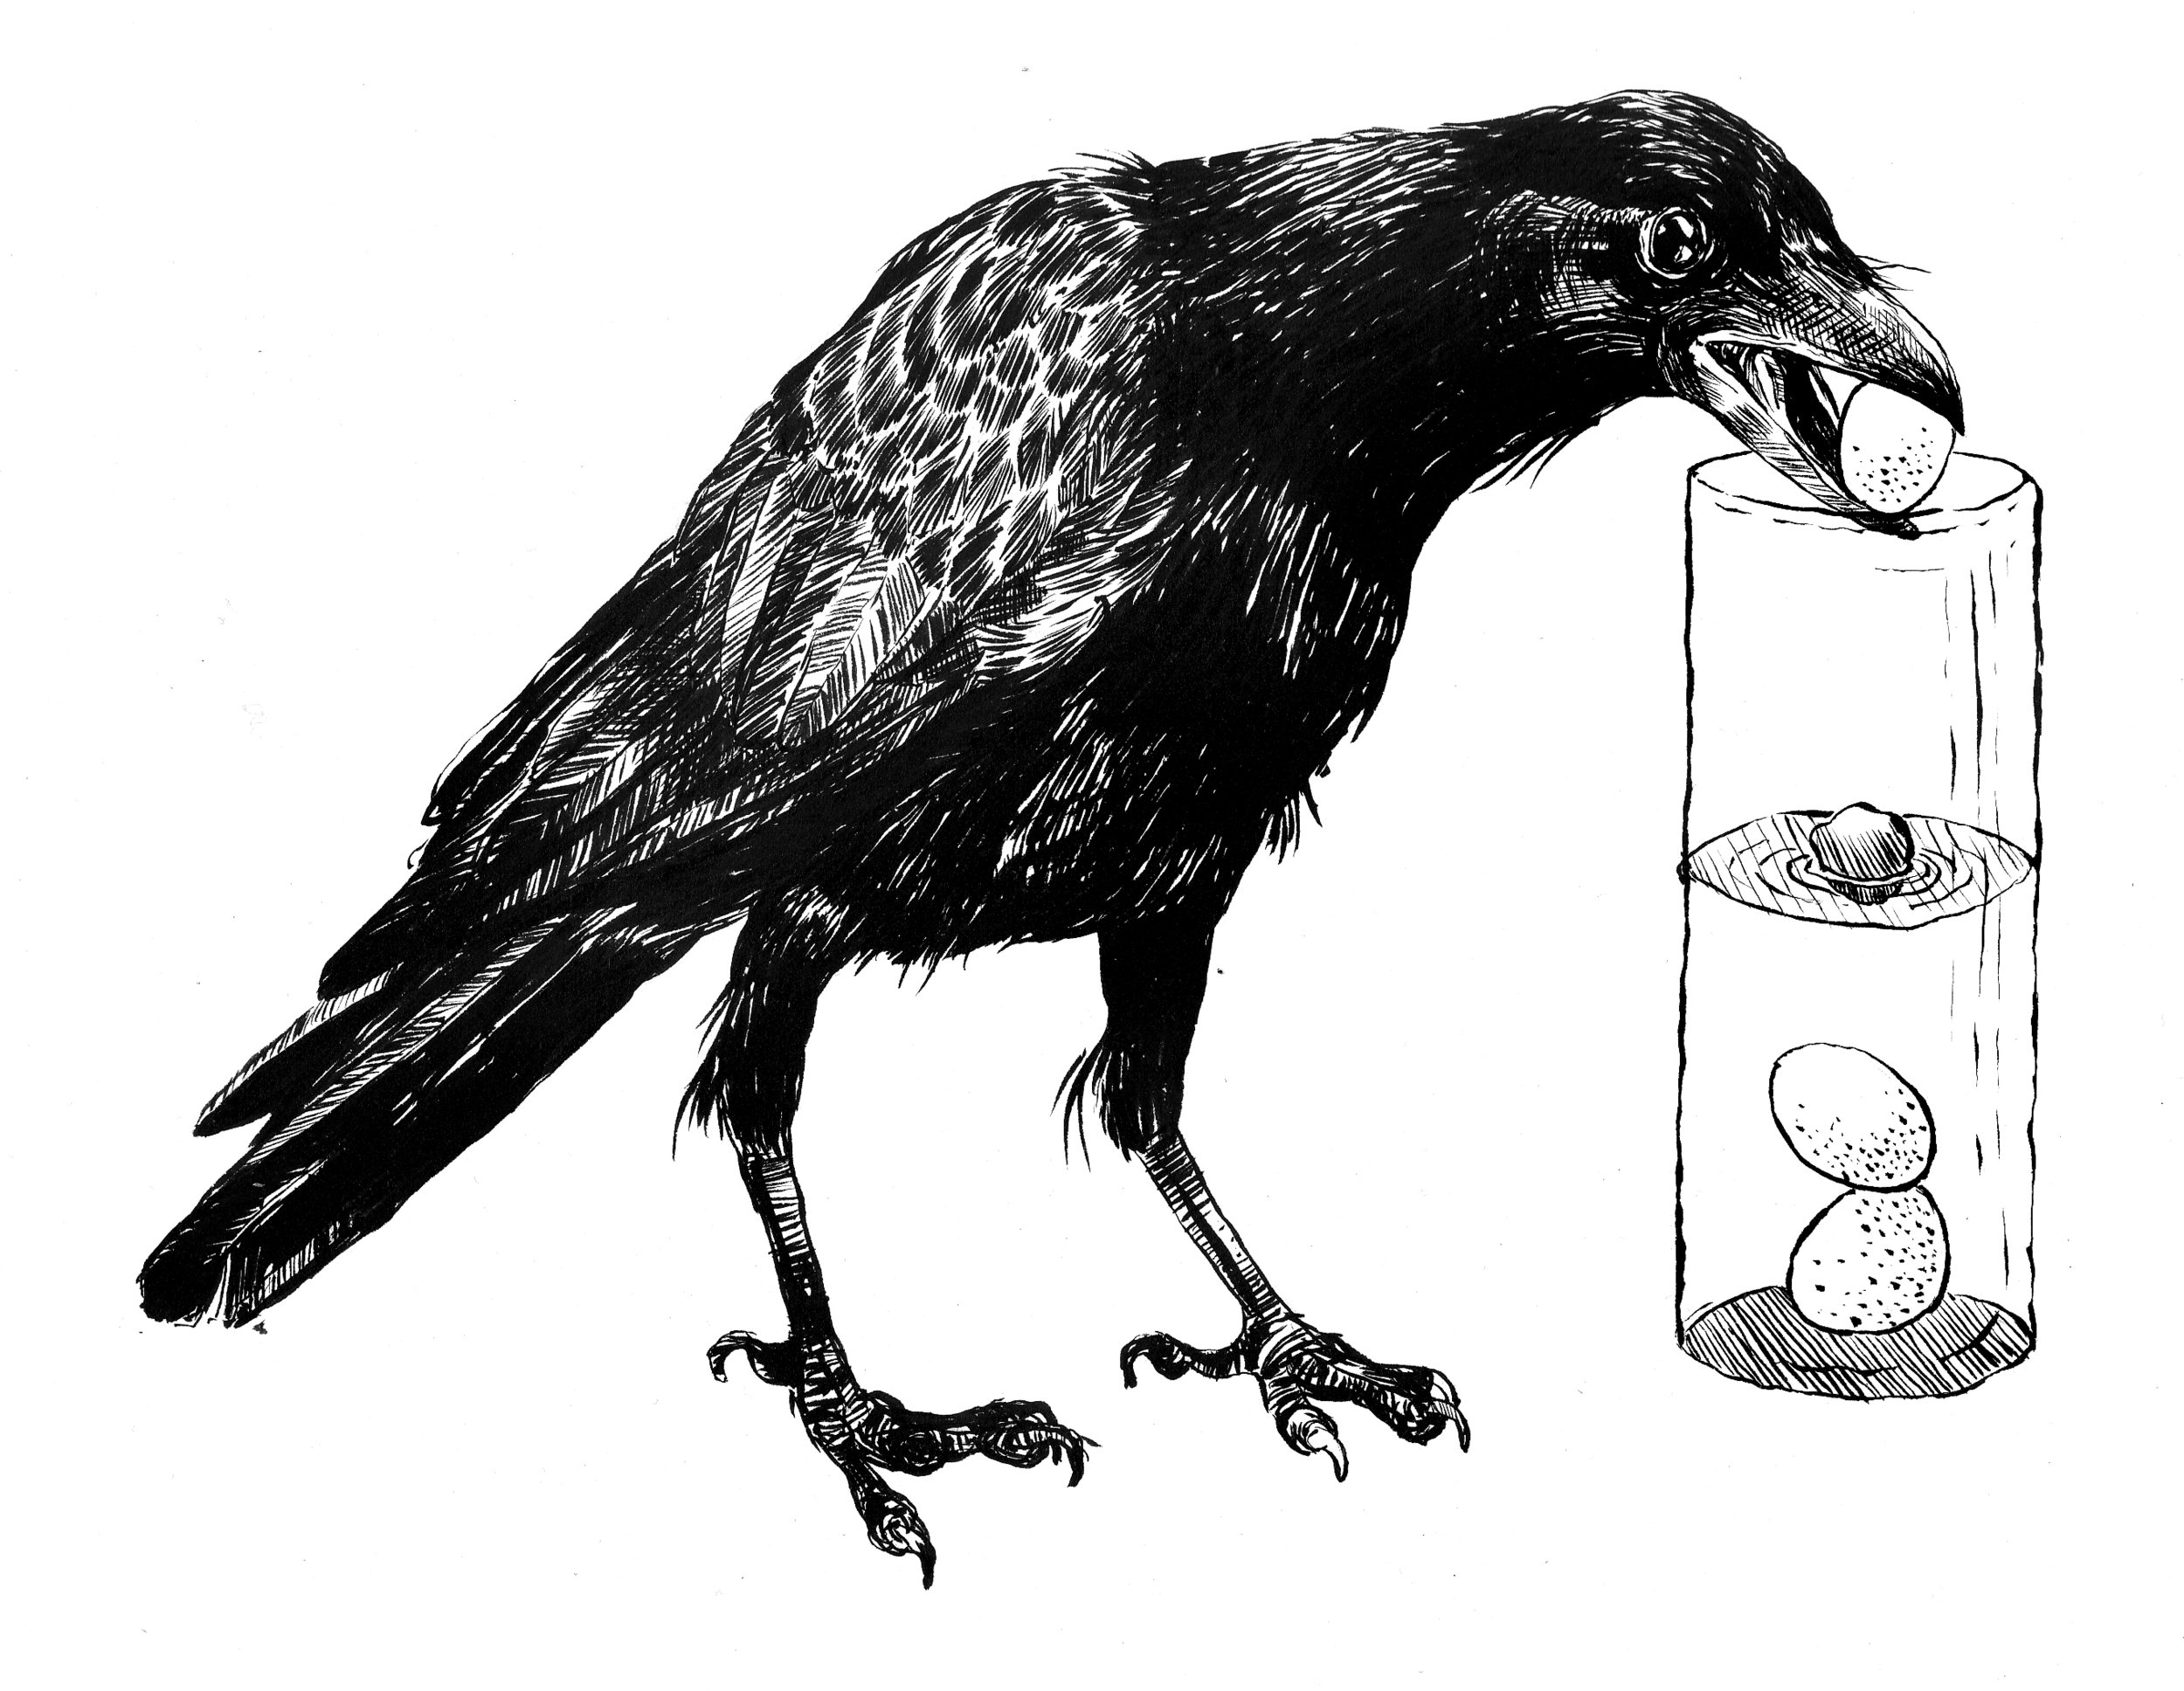 New Caledonian Crow for SpringBoard/ The College Board, Ink 2015